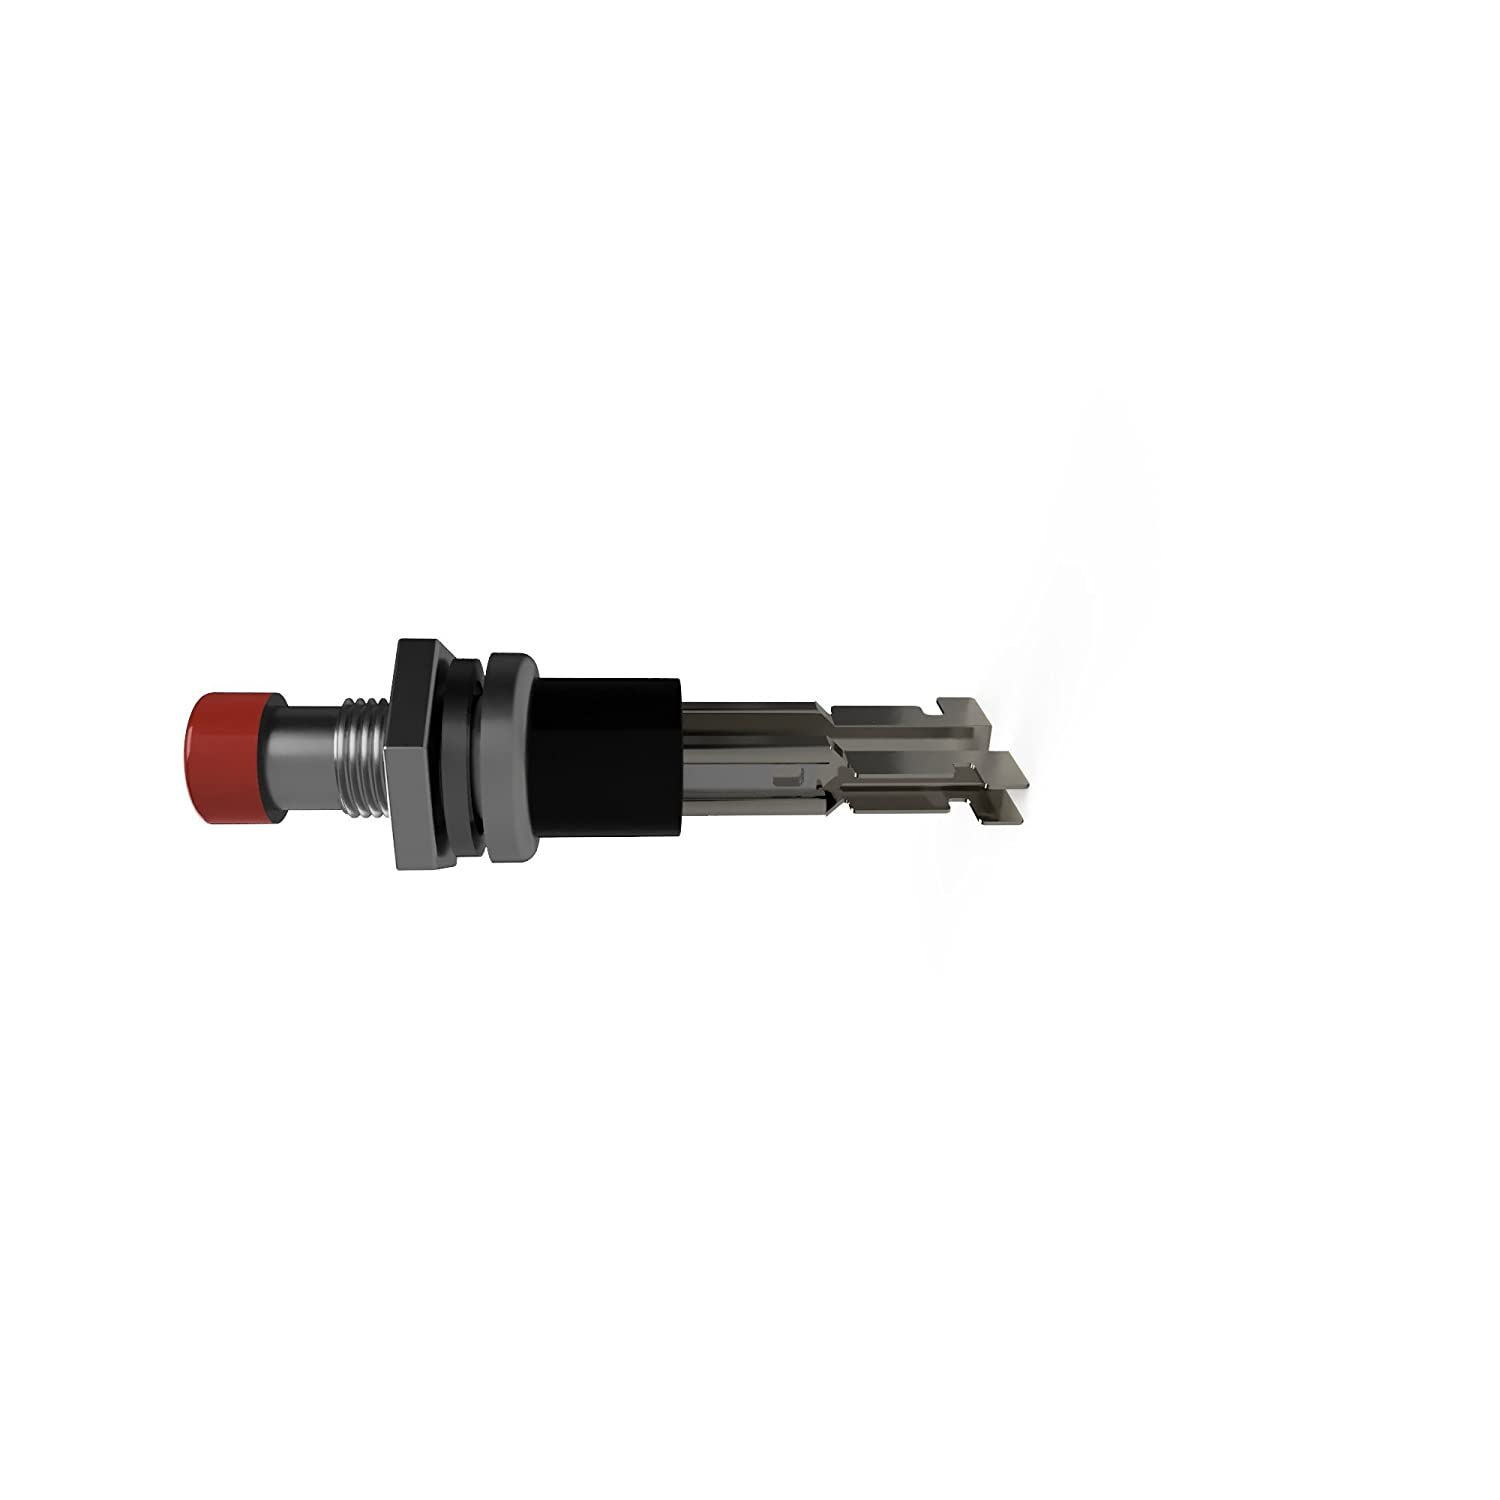 Push Button Micro Switch Red Mini 7mm Momentary 0.5A @ 120VAC NC ON-Off Normally Closed Solder-Free 10 Pack ON-Off 3A @ 12VDC Rated 20 Quick Connect Terminals Included